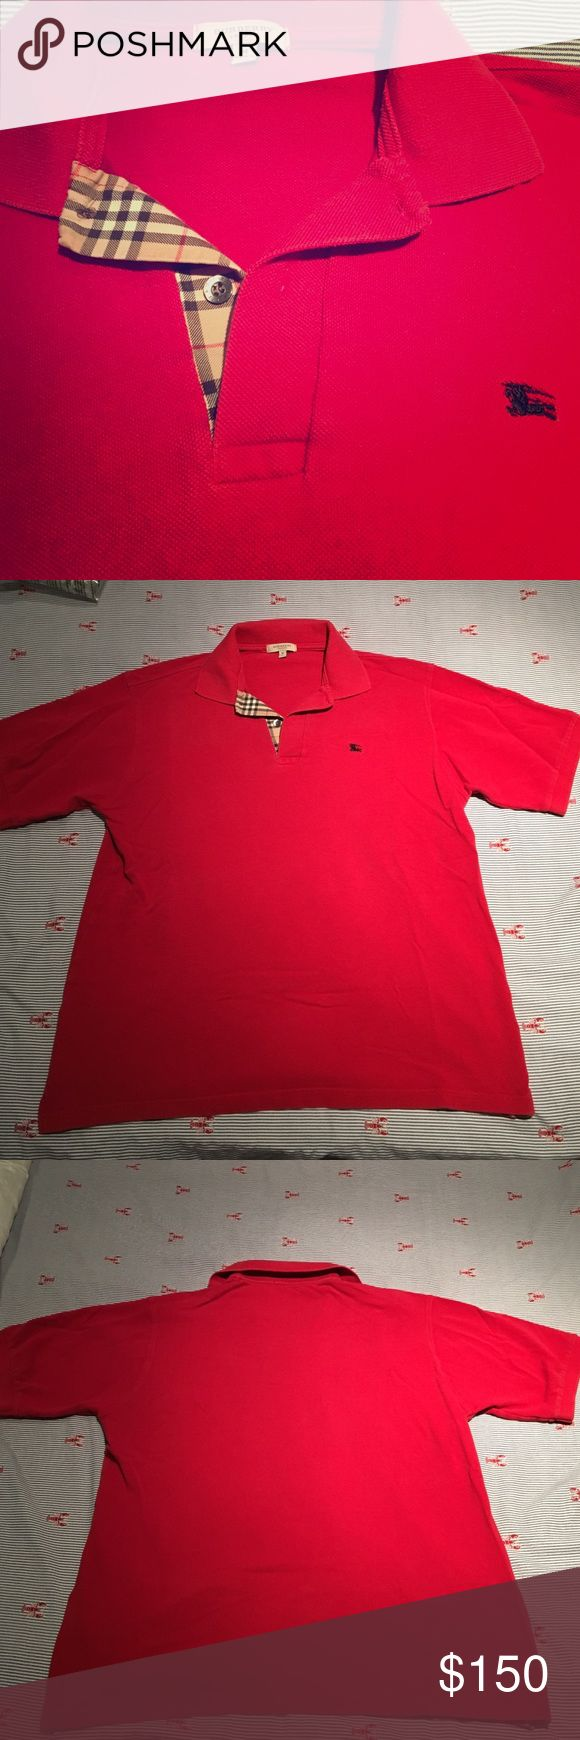 MEN'S BURBERRY Polo shirt Red Burberry shirt for men with plaid detailing at the collar. Military red cotton classic contrast short sleeve logo polo shirt from Burberry Brit. Worn with care. Burberry Tops Tees - Short Sleeve